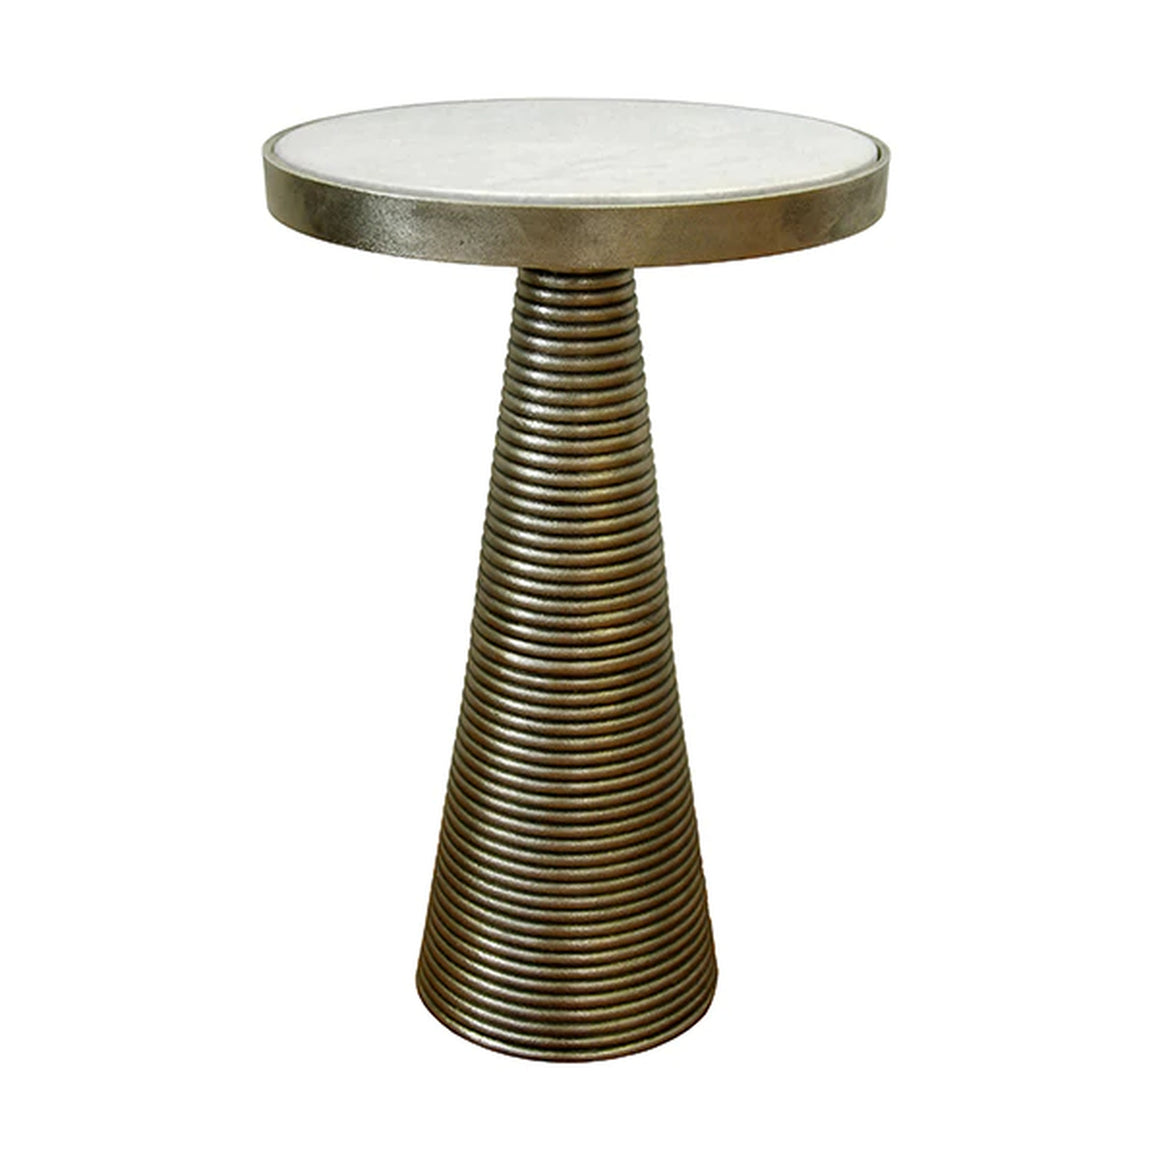 Worlds Away Side Table - Tapered Ribbed Brass Base